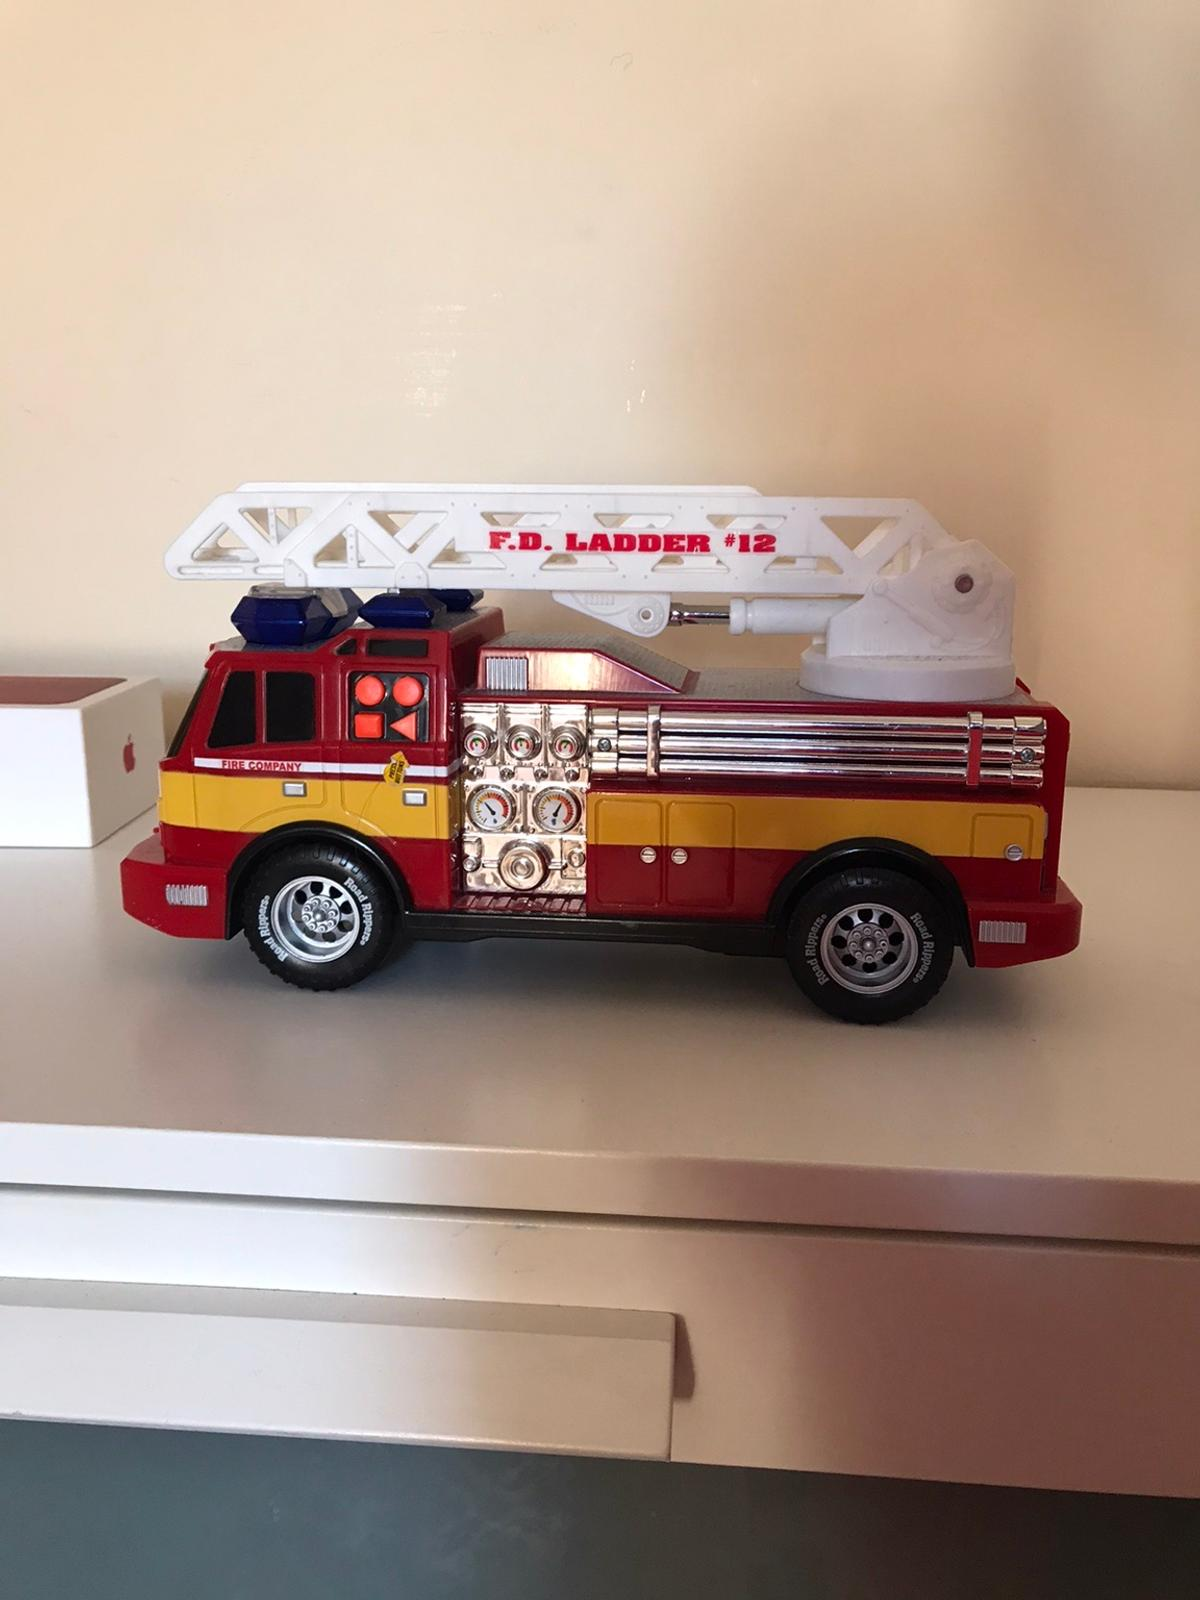 Good condition toy fire truck with lights and sound battery operated comes with batteries inside collection from West Norwood or can post for extra £3